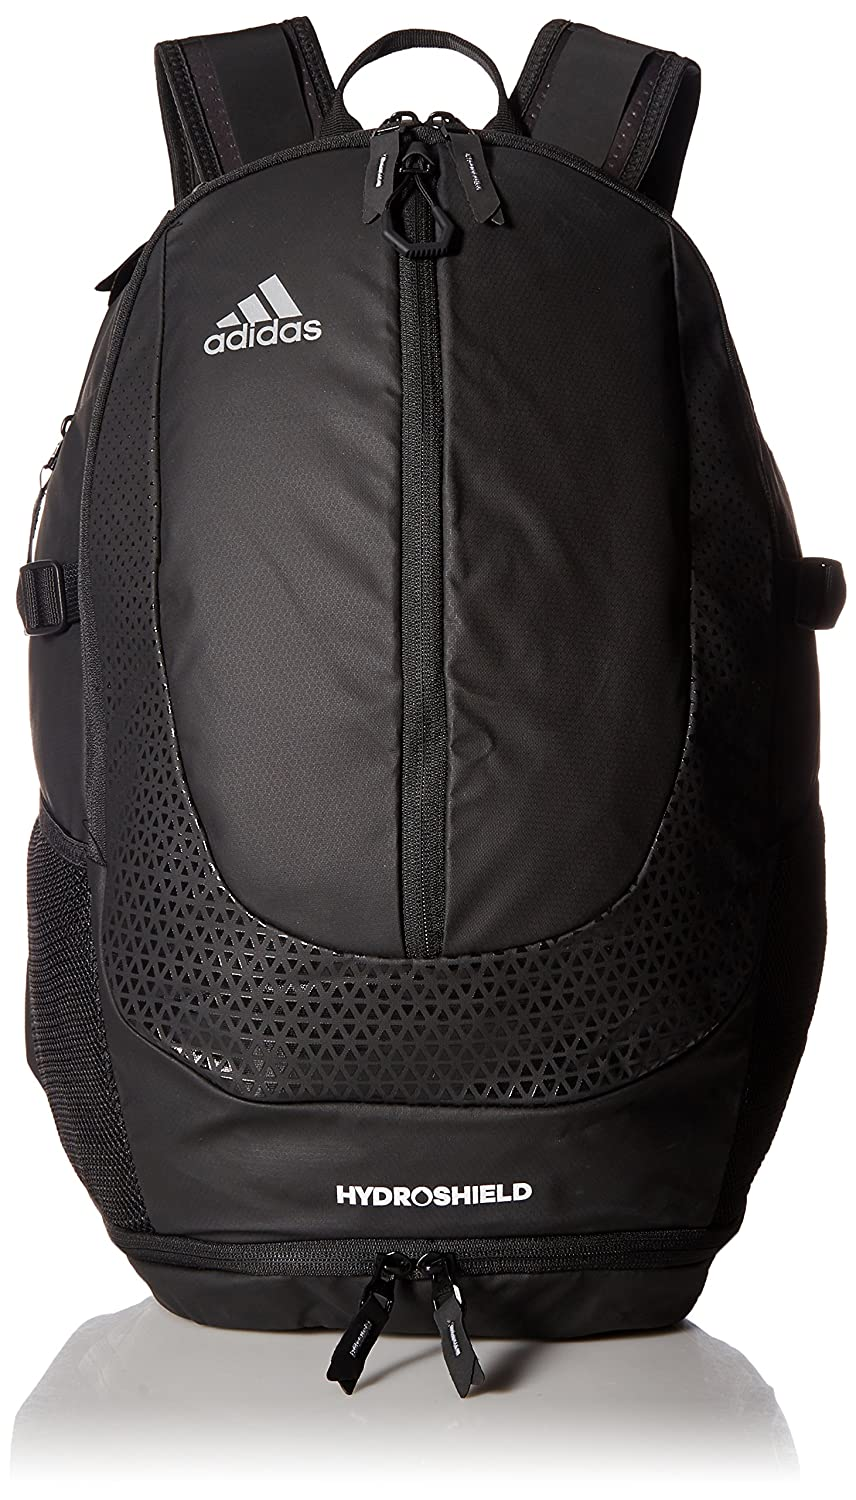 554a8dd16 adidas Primero II Backpack, One Size, Black/White, Gym Bags - Amazon Canada